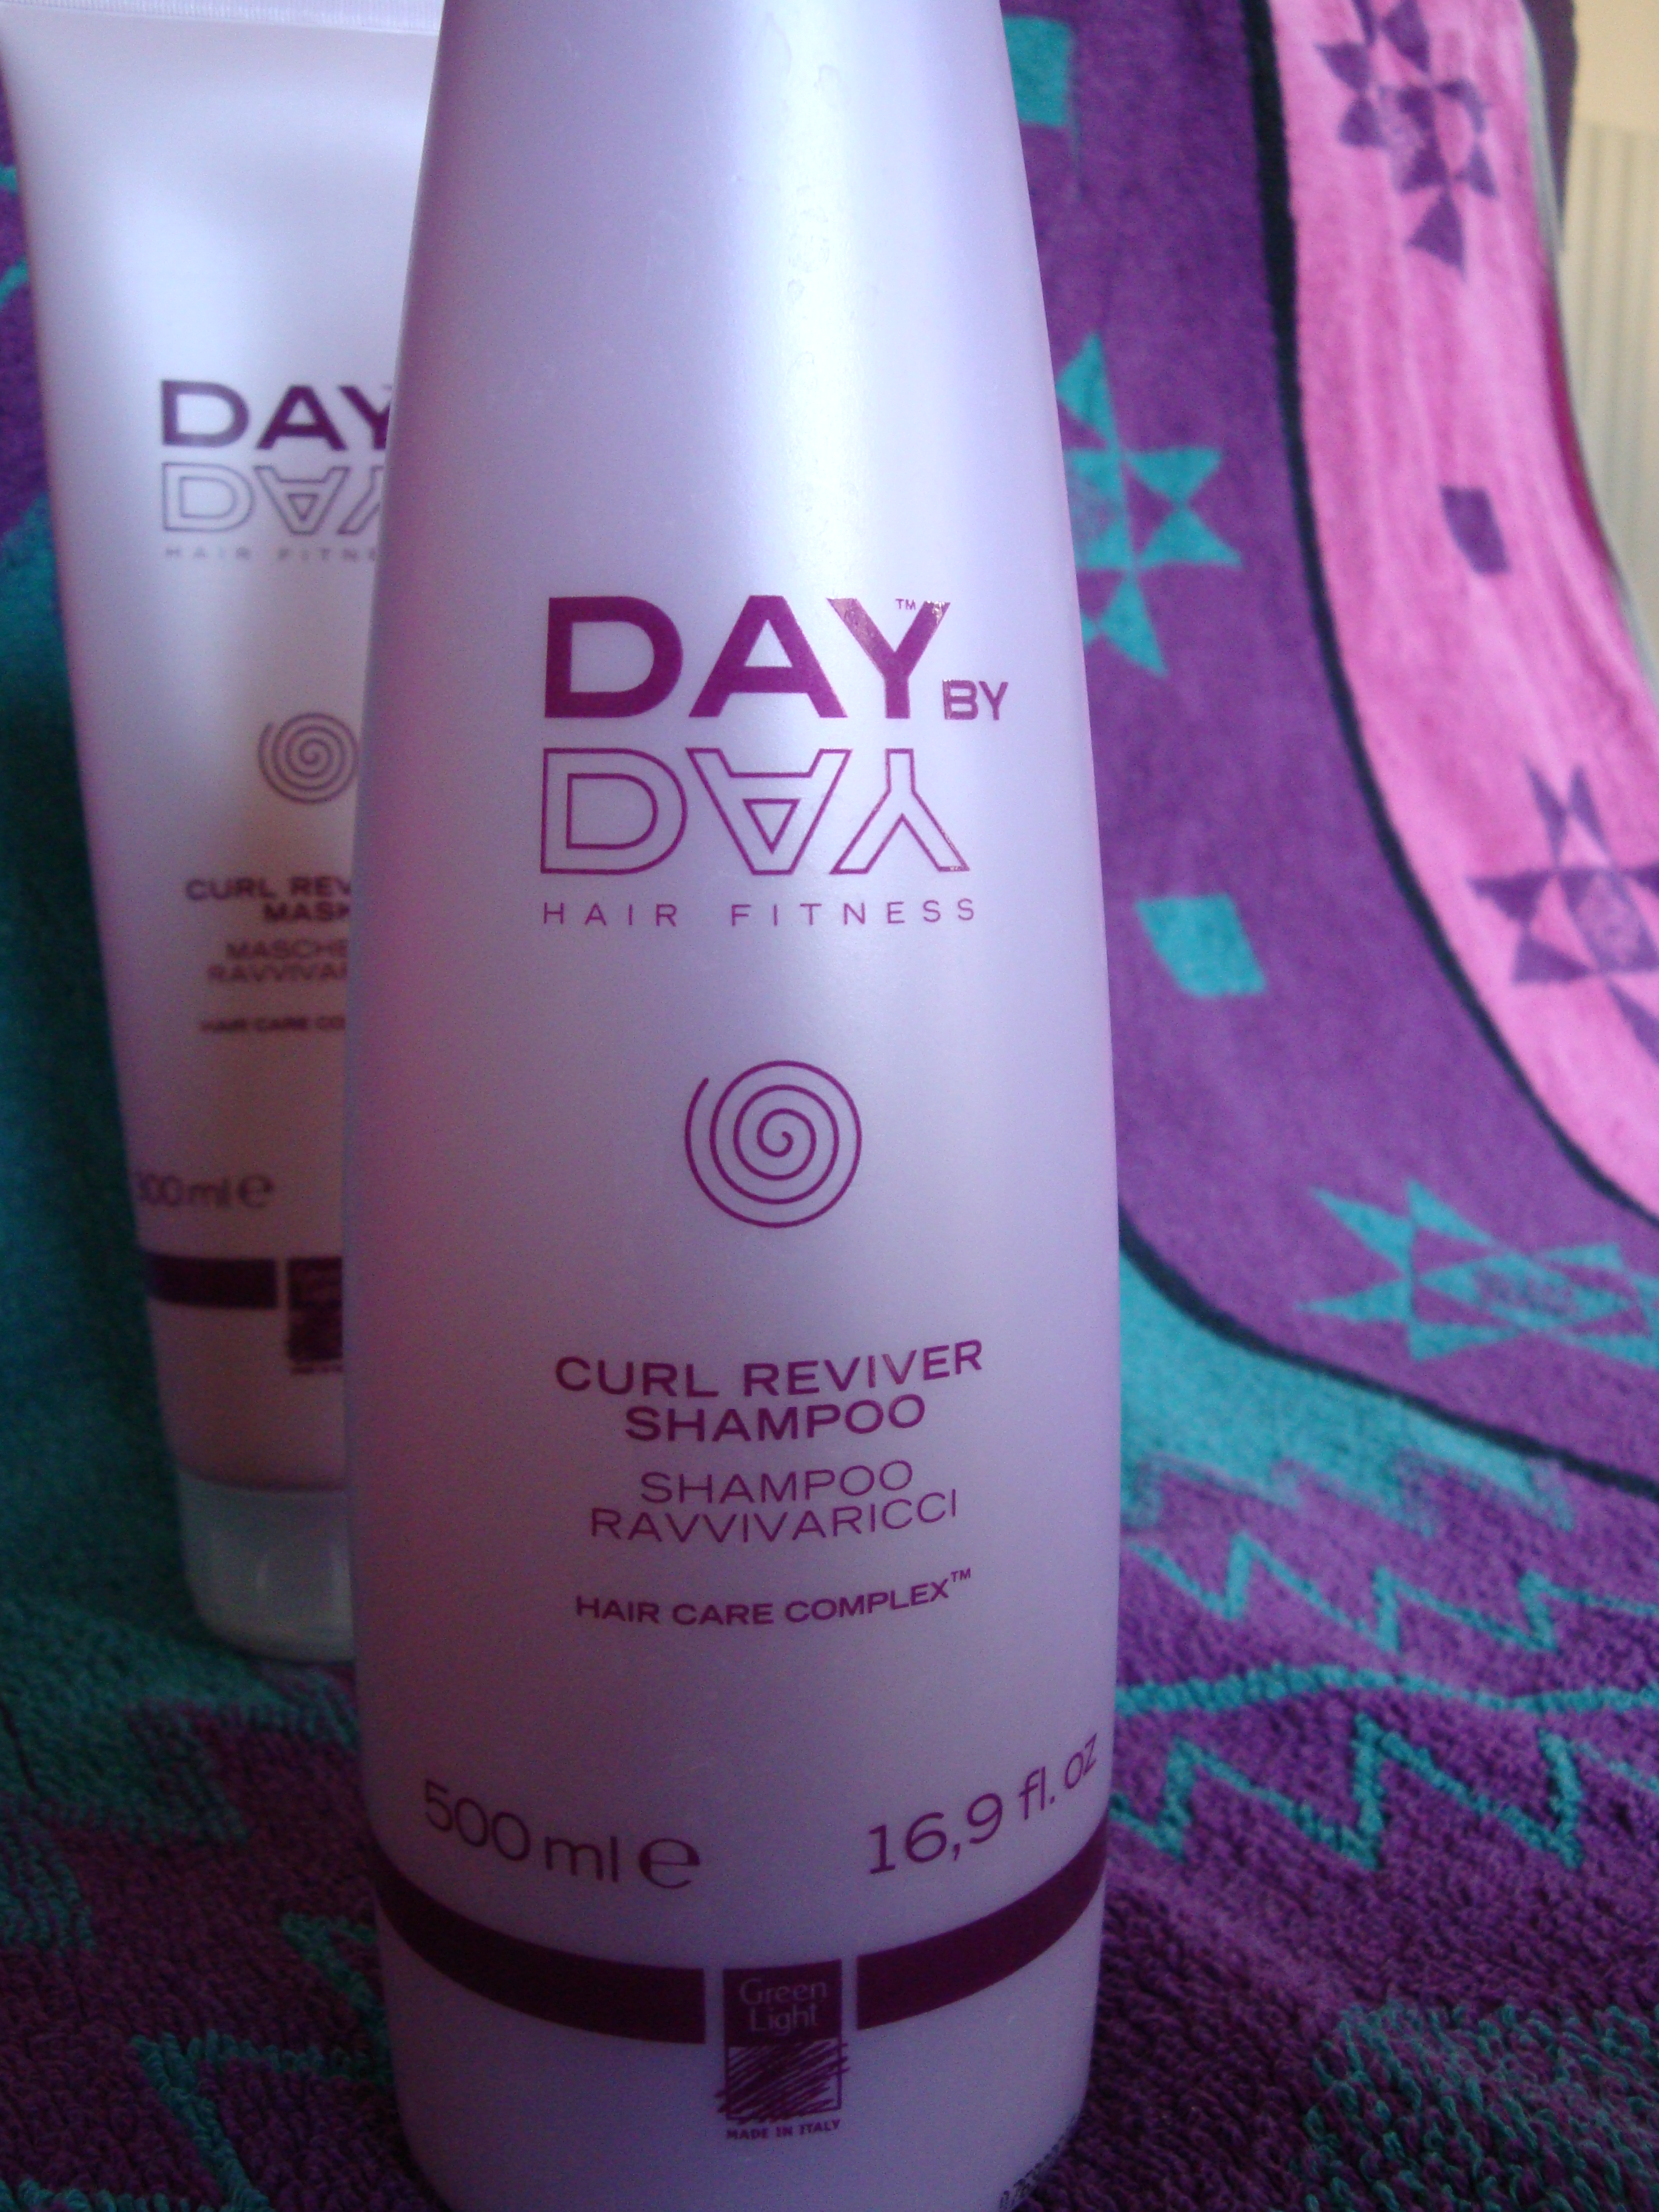 Day by Day curl reviver shampoo